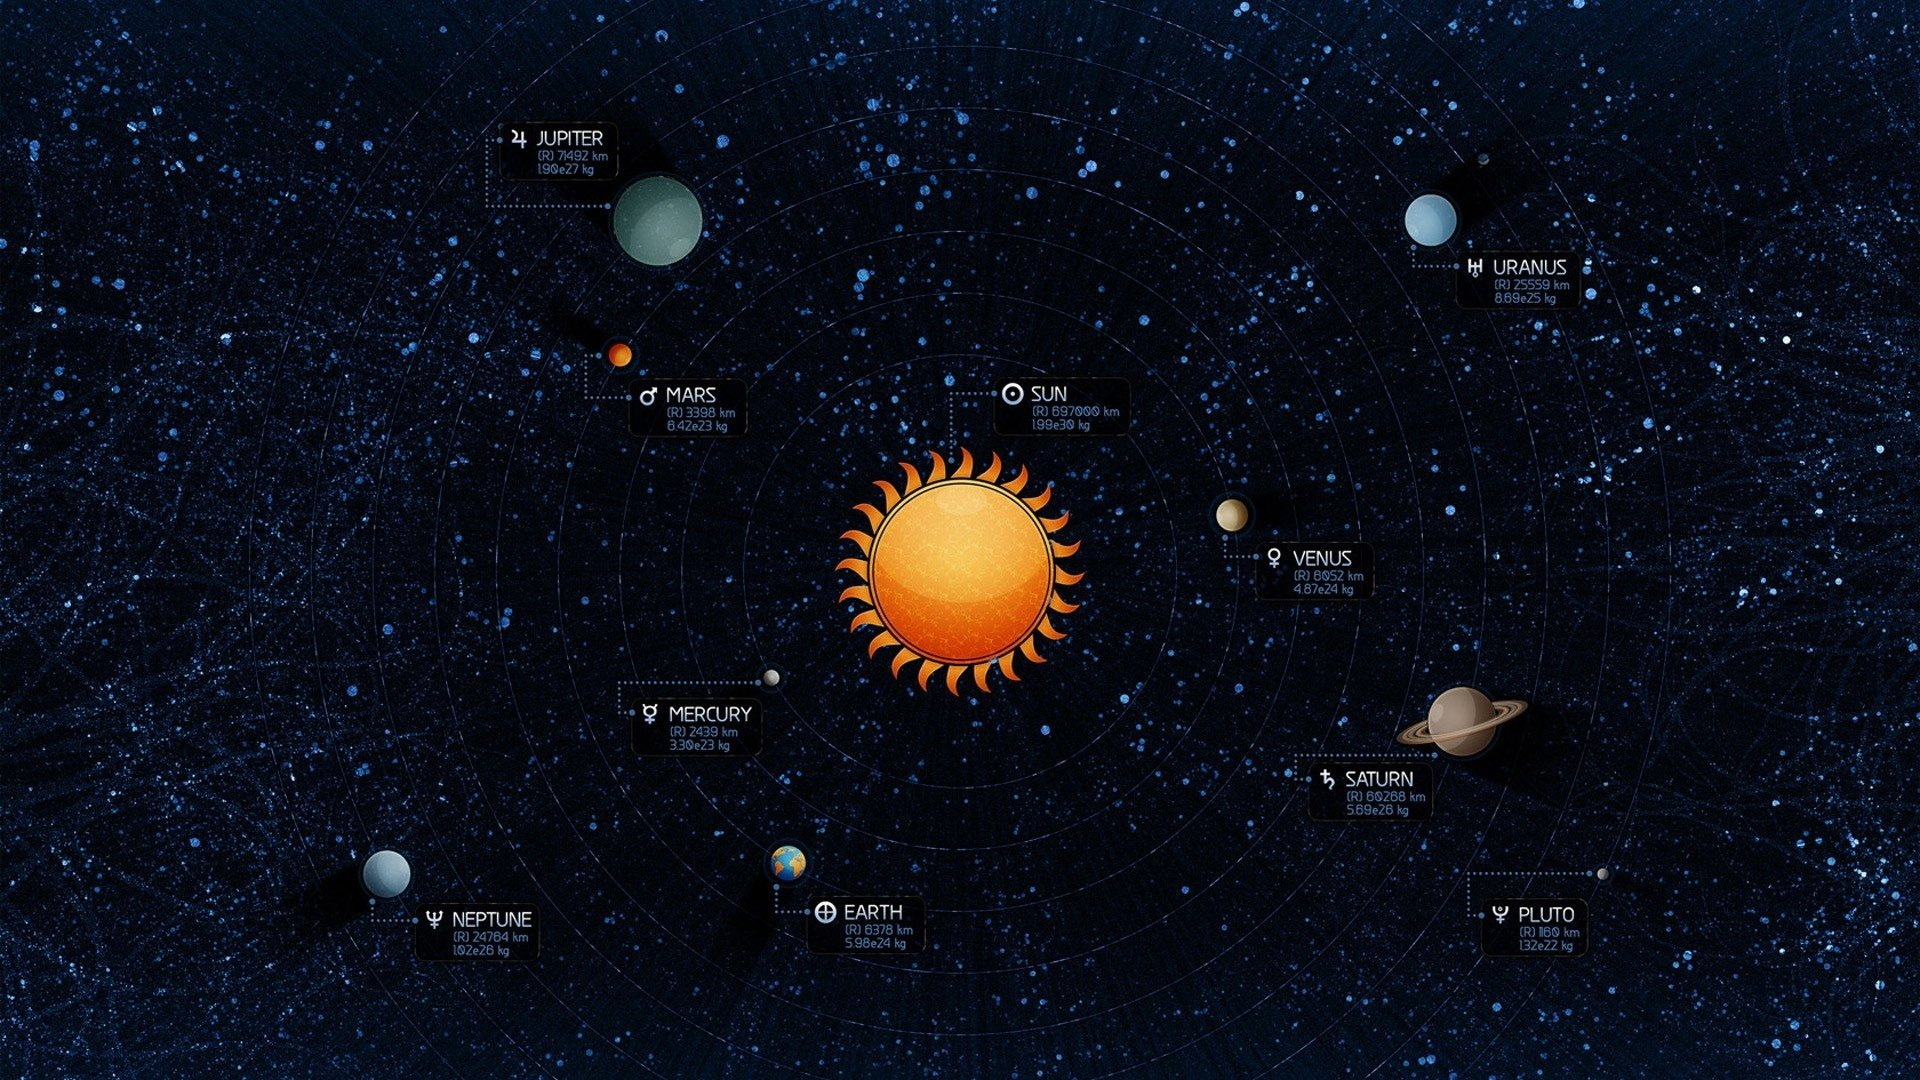 Sci Fi - Solar System  Artwork Stars Planet Space Diagrams Wallpaper